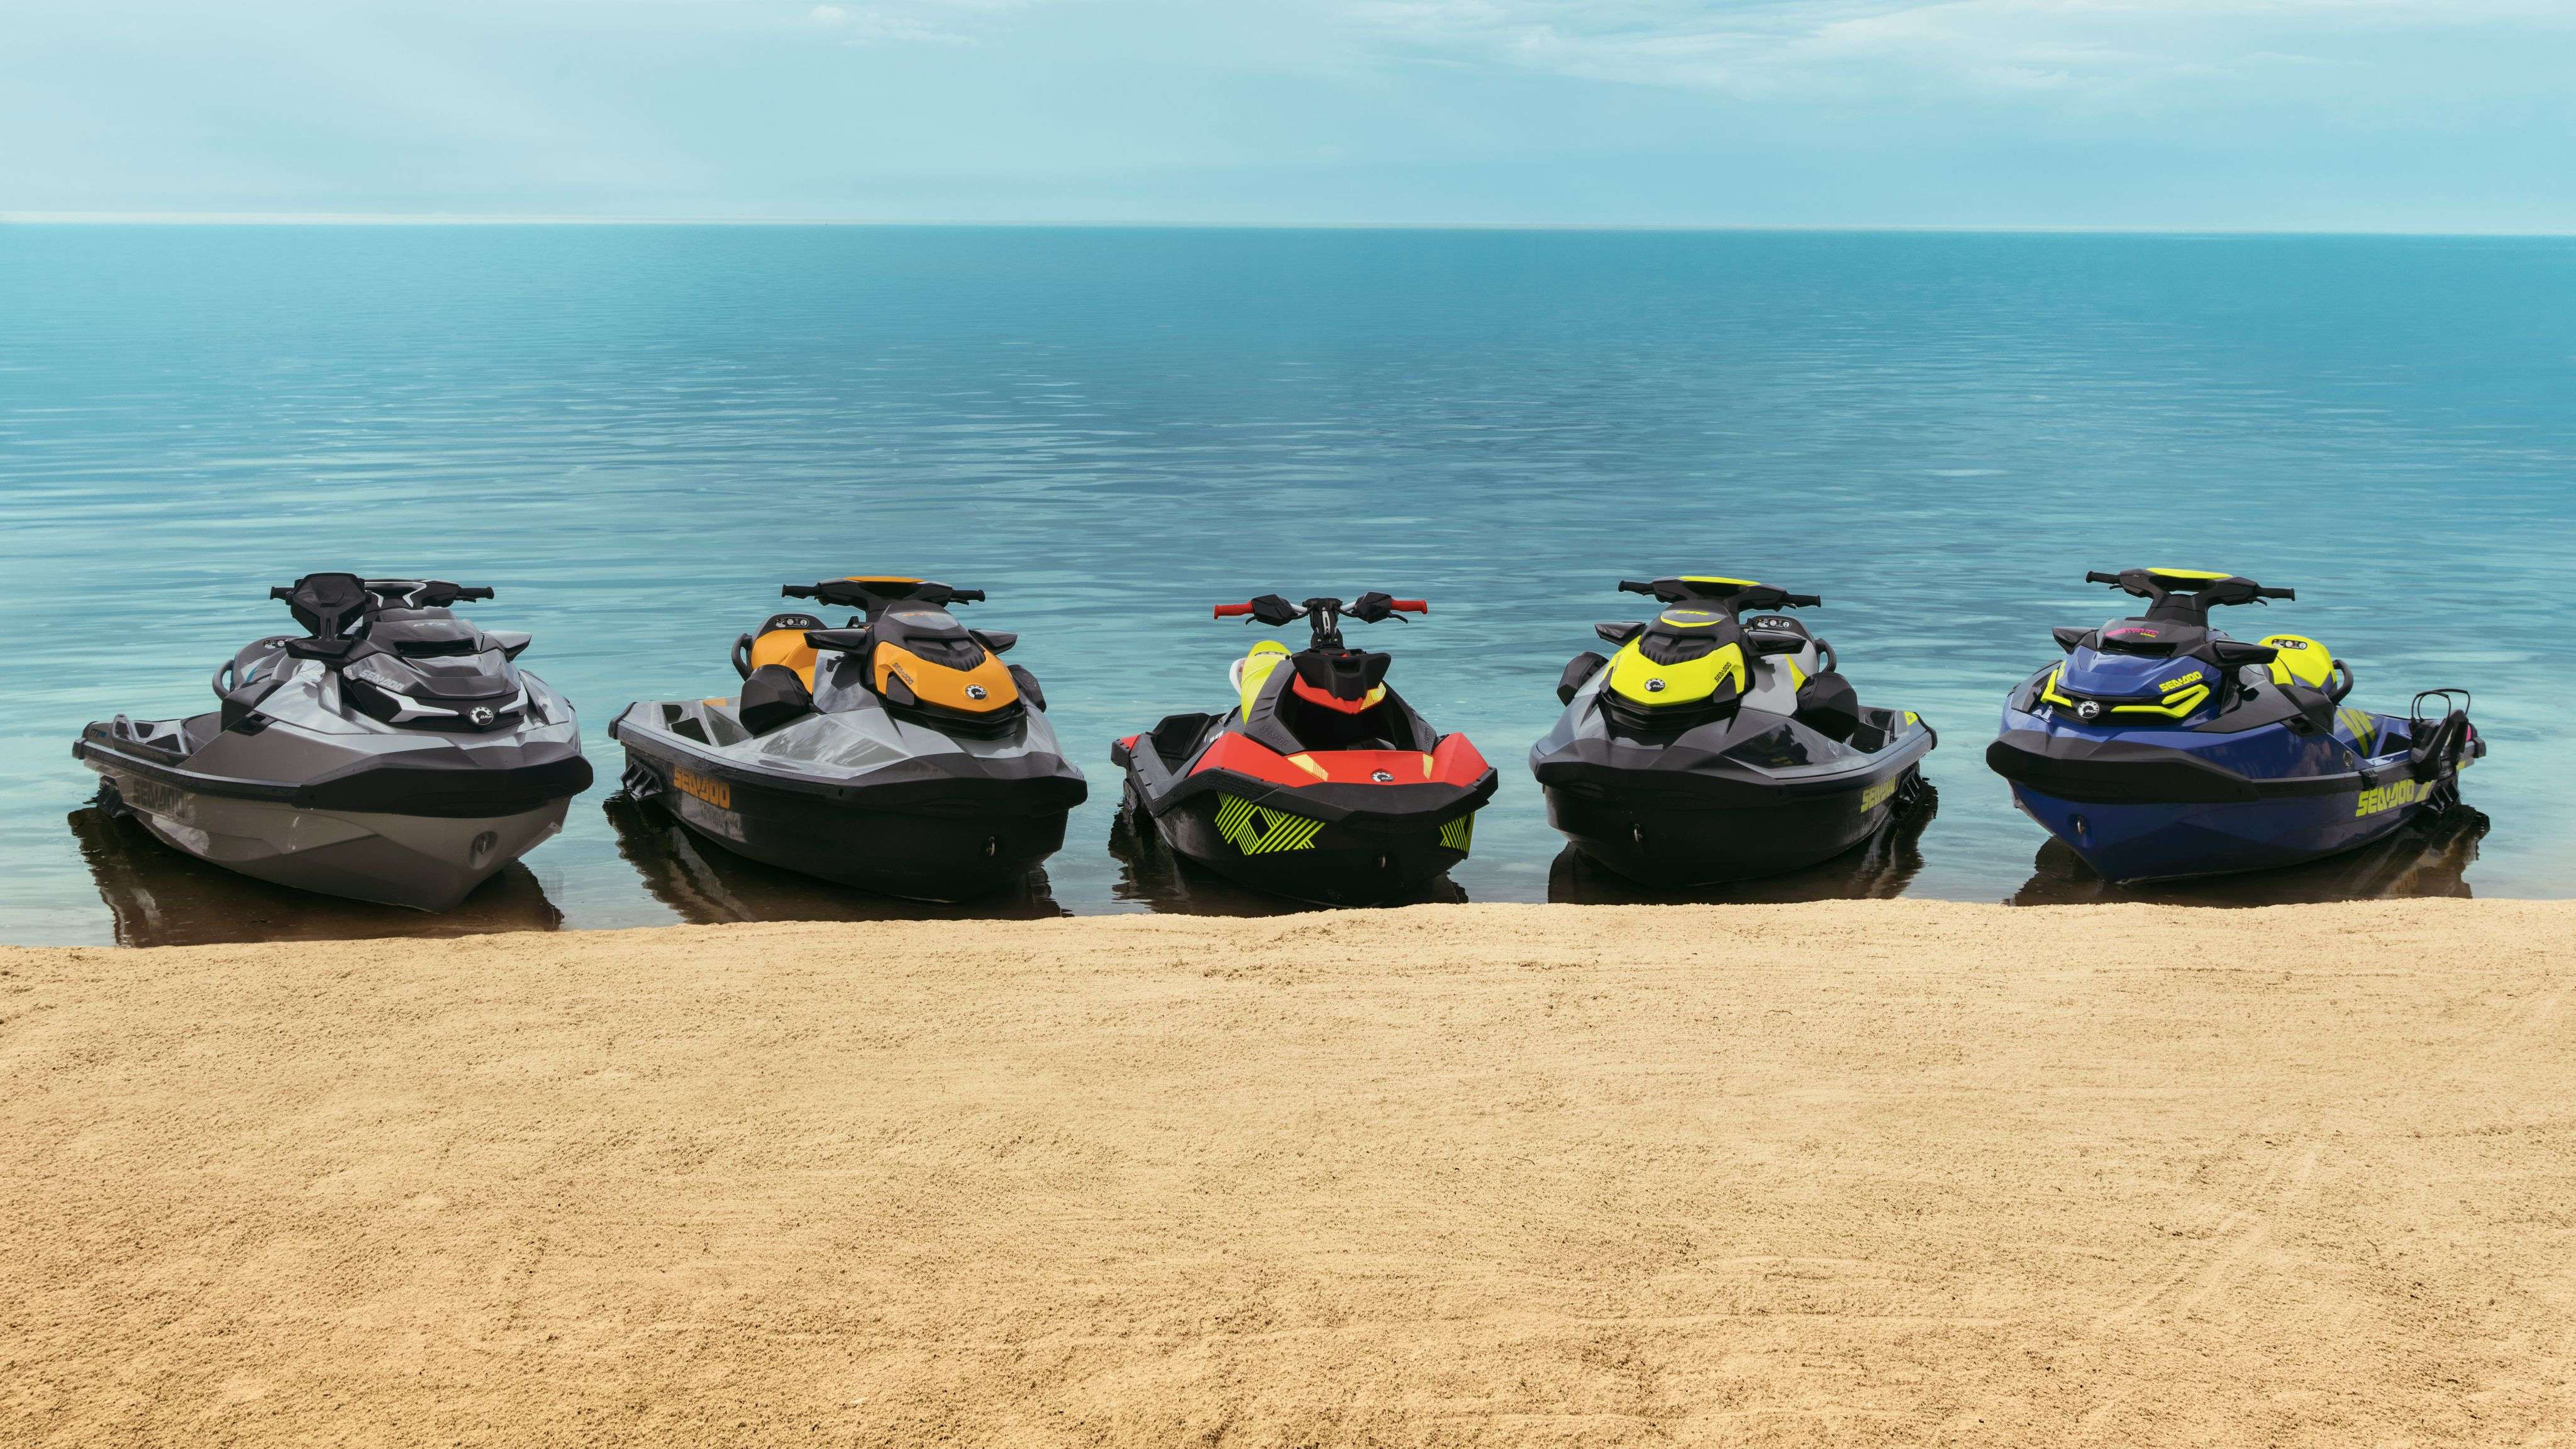 2020 Sea-Doo lineup on the beach